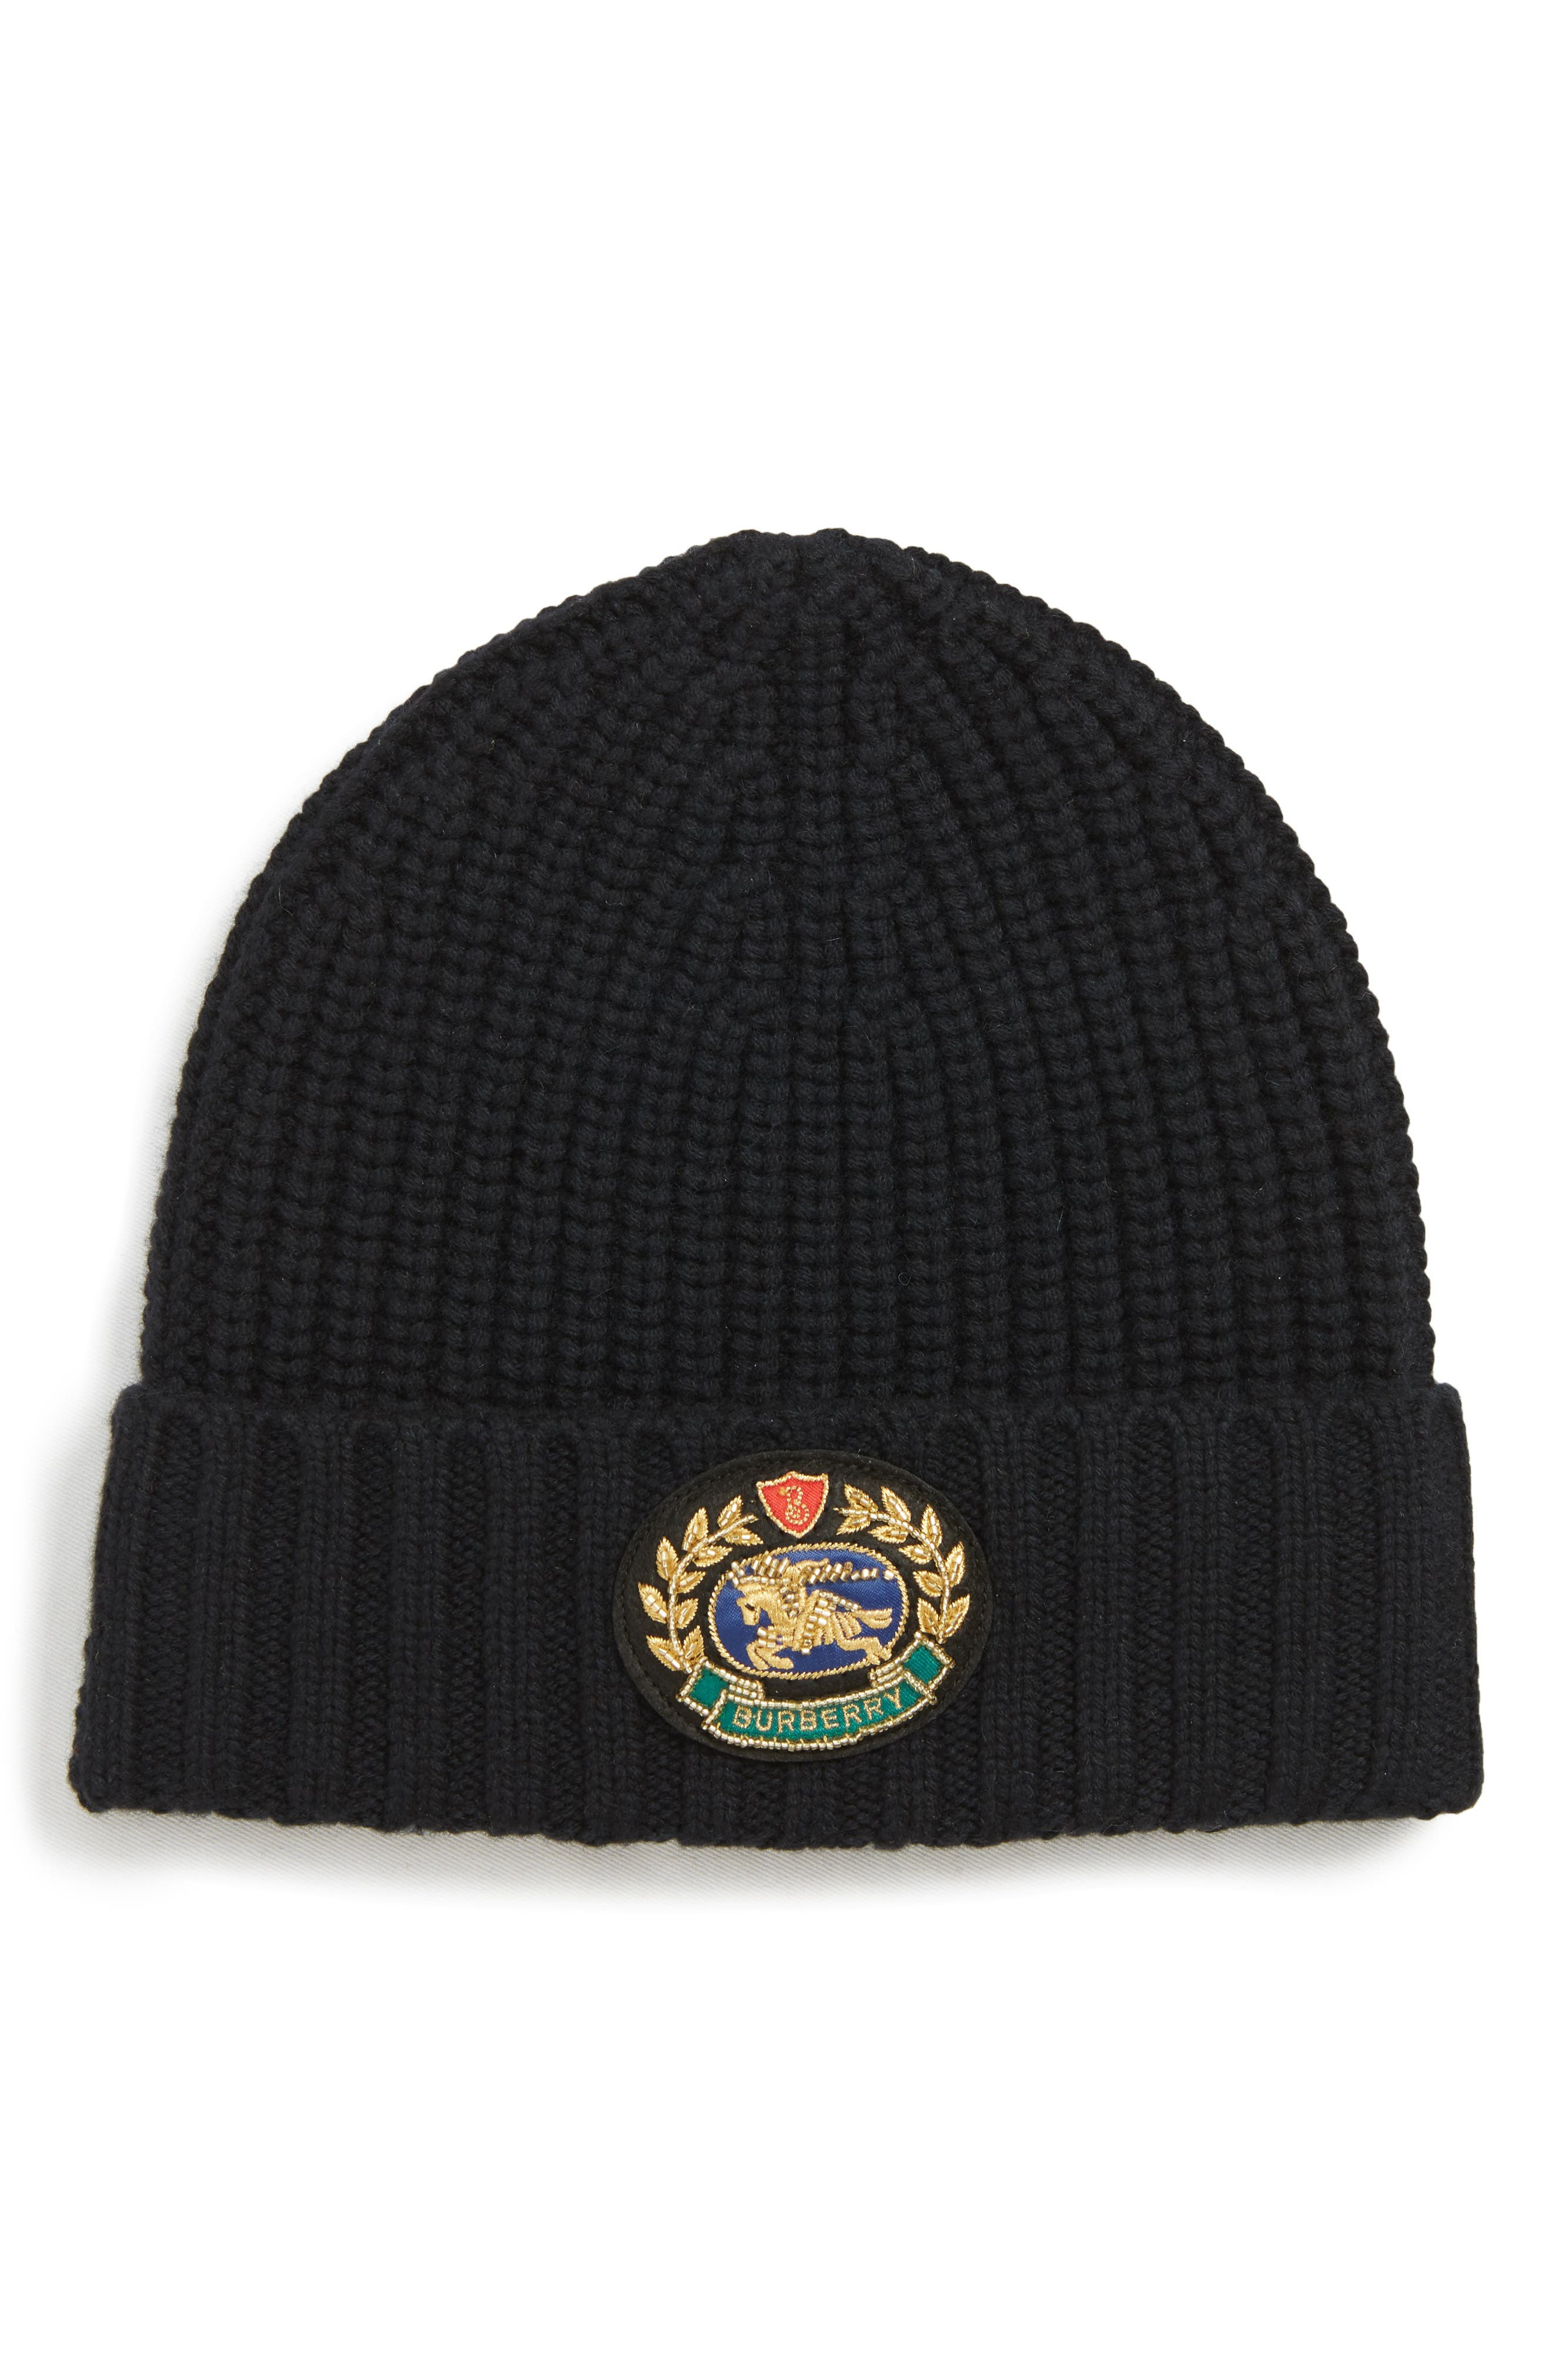 Embroidered Crest Wool & Cashmere Beanie,                         Main,                         color, 001